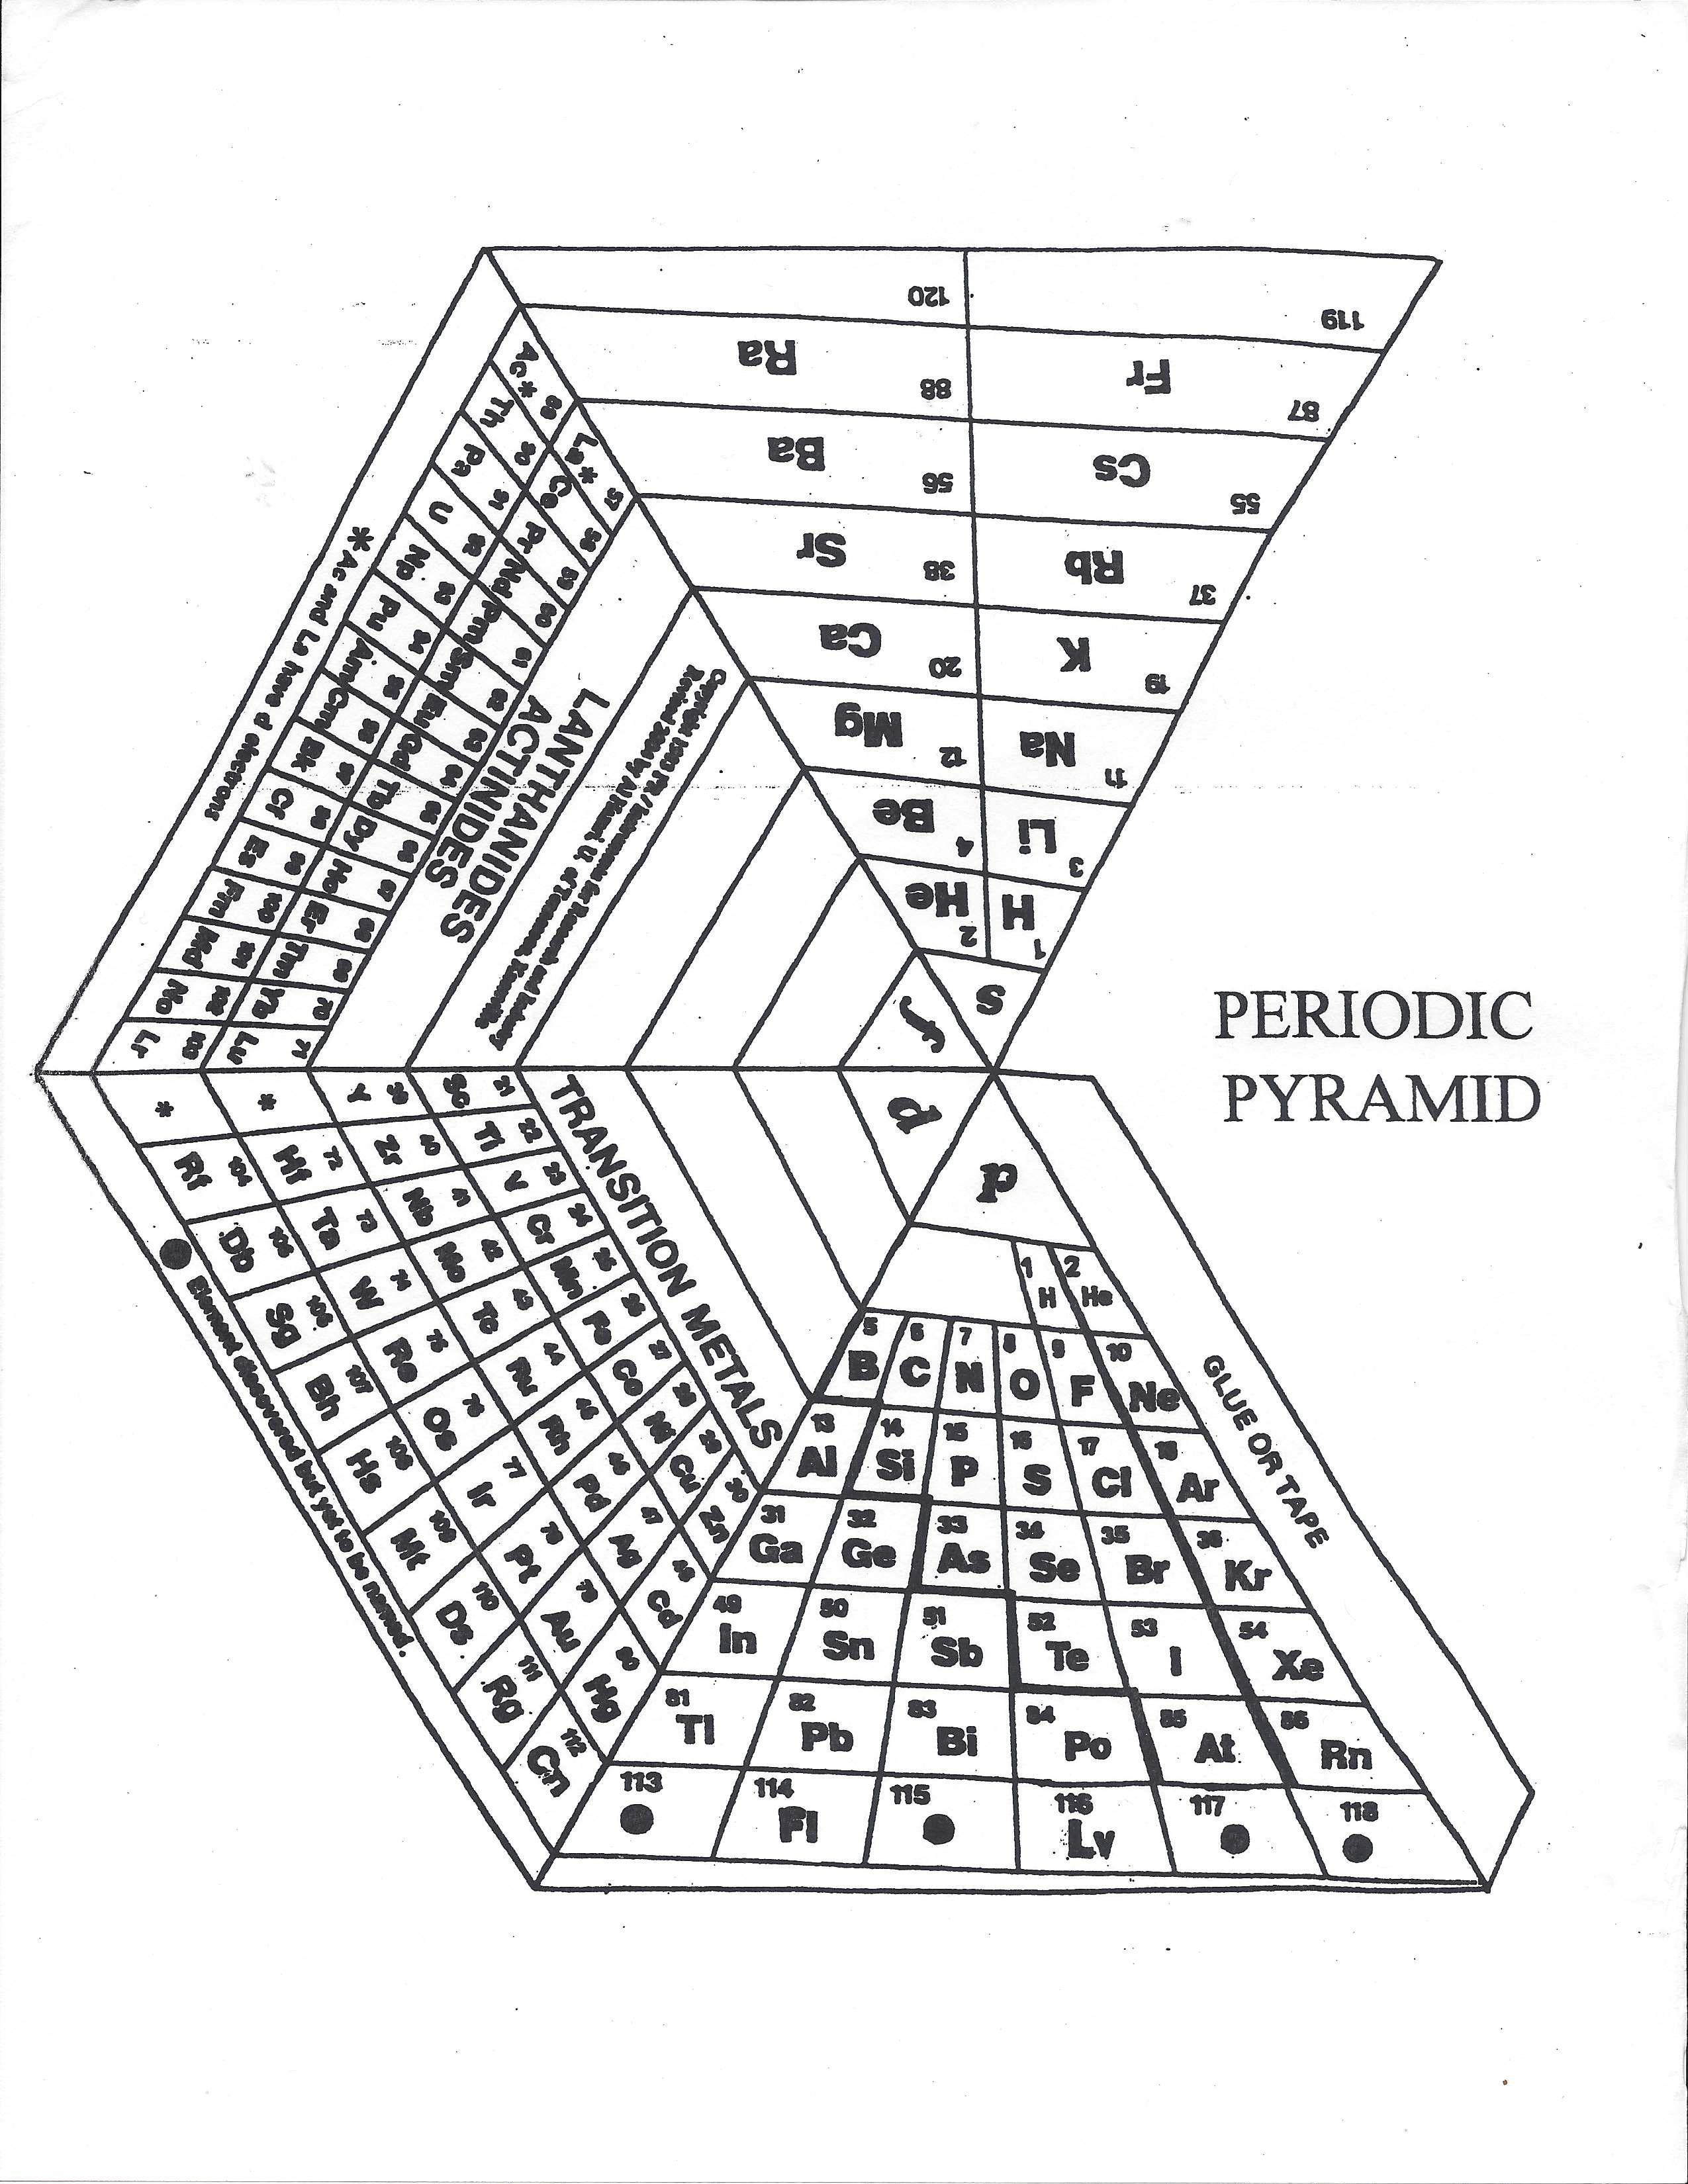 Foldable Periodic pyramid table of elements! You can even